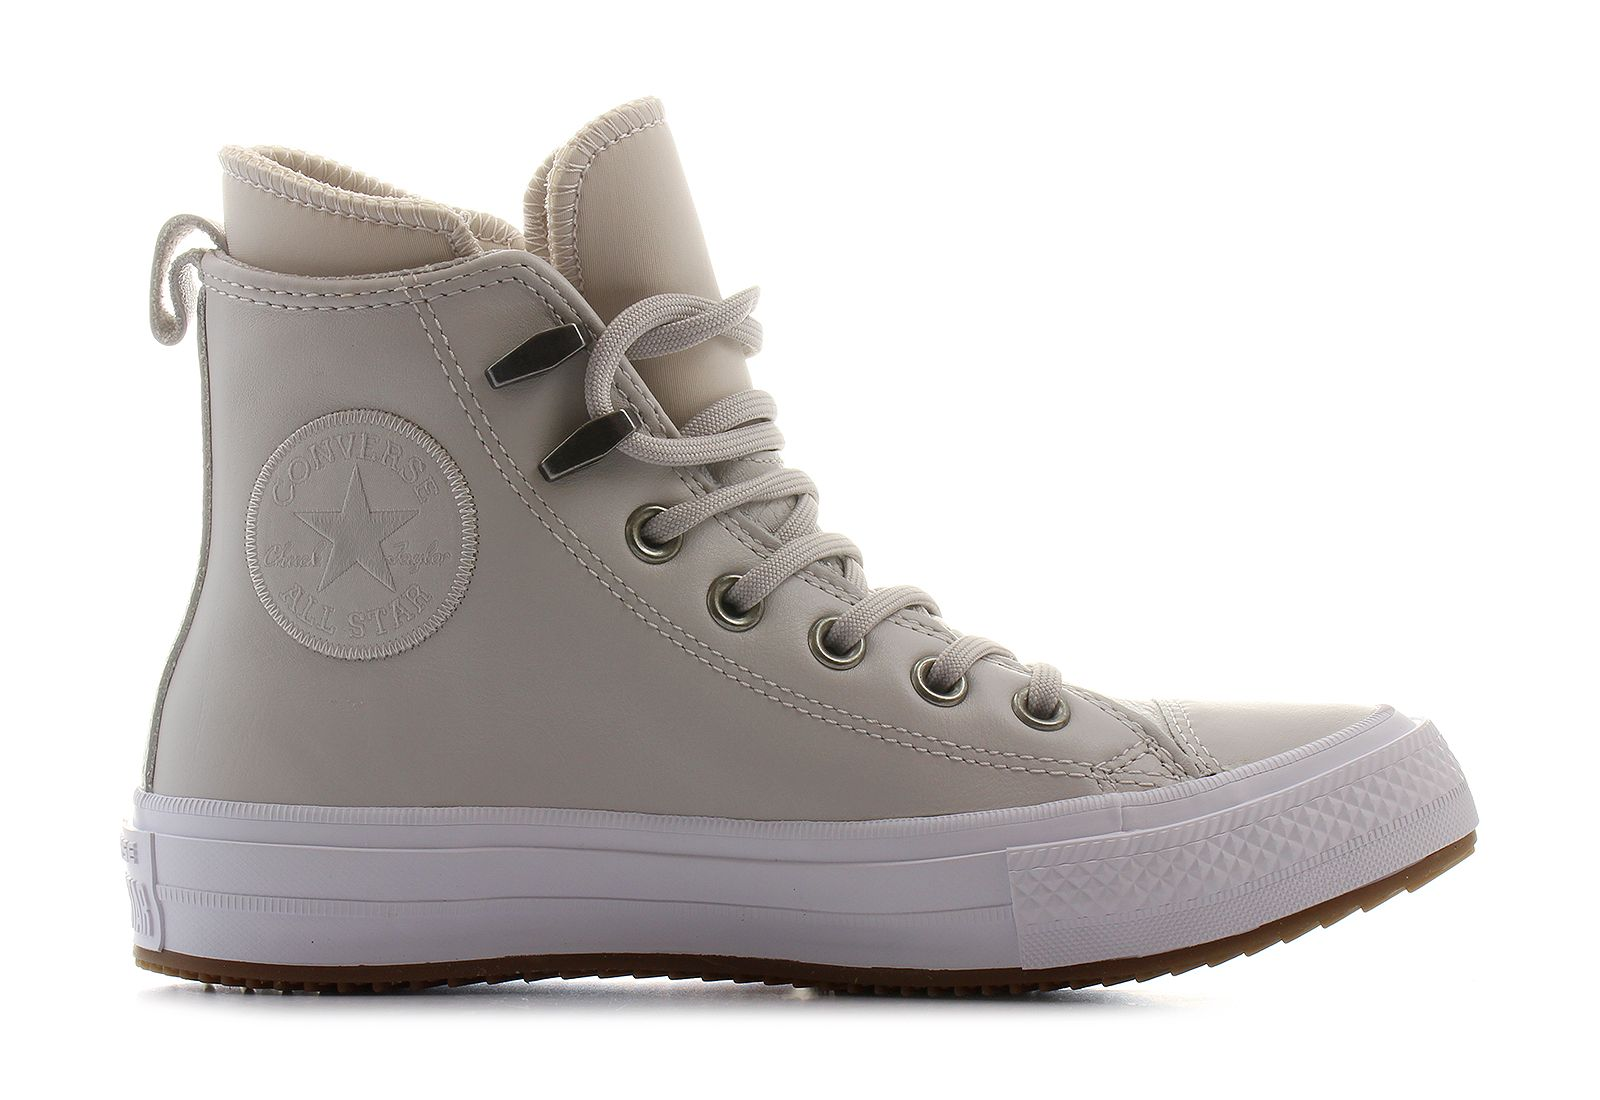 converse chuck taylor waterproof leather boot